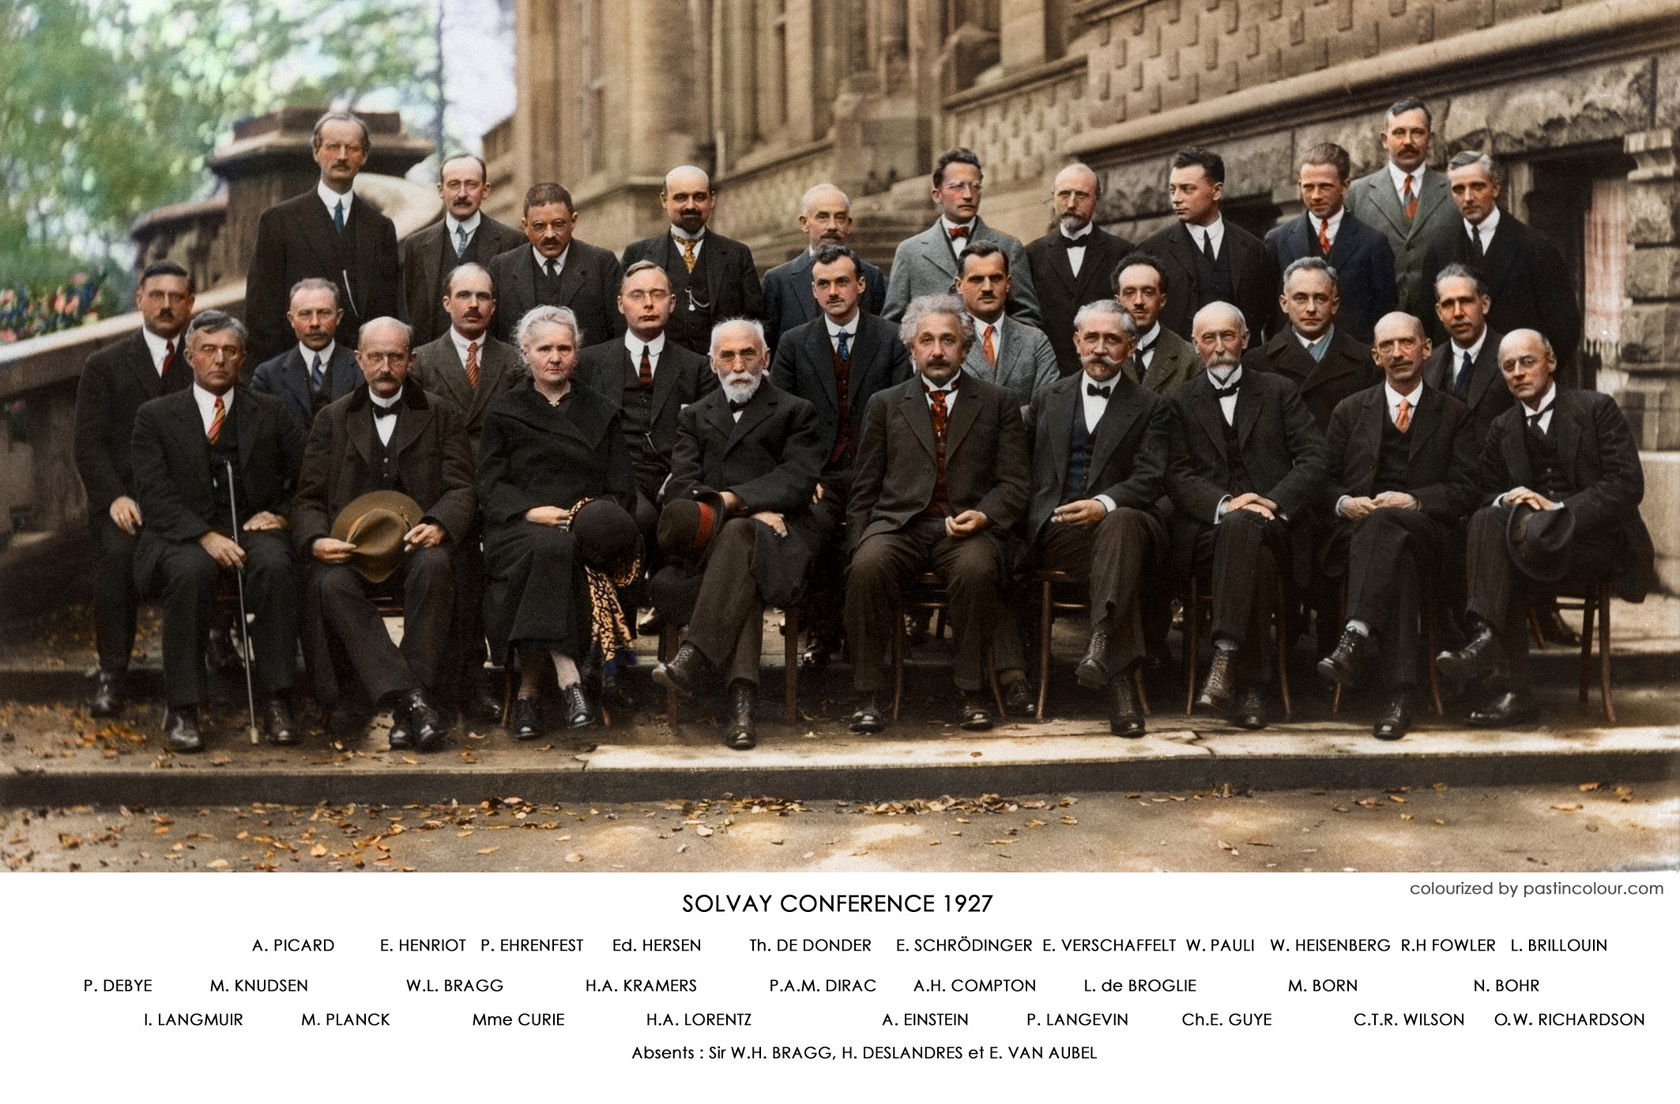 Solvay conference 1927 colourized einstein